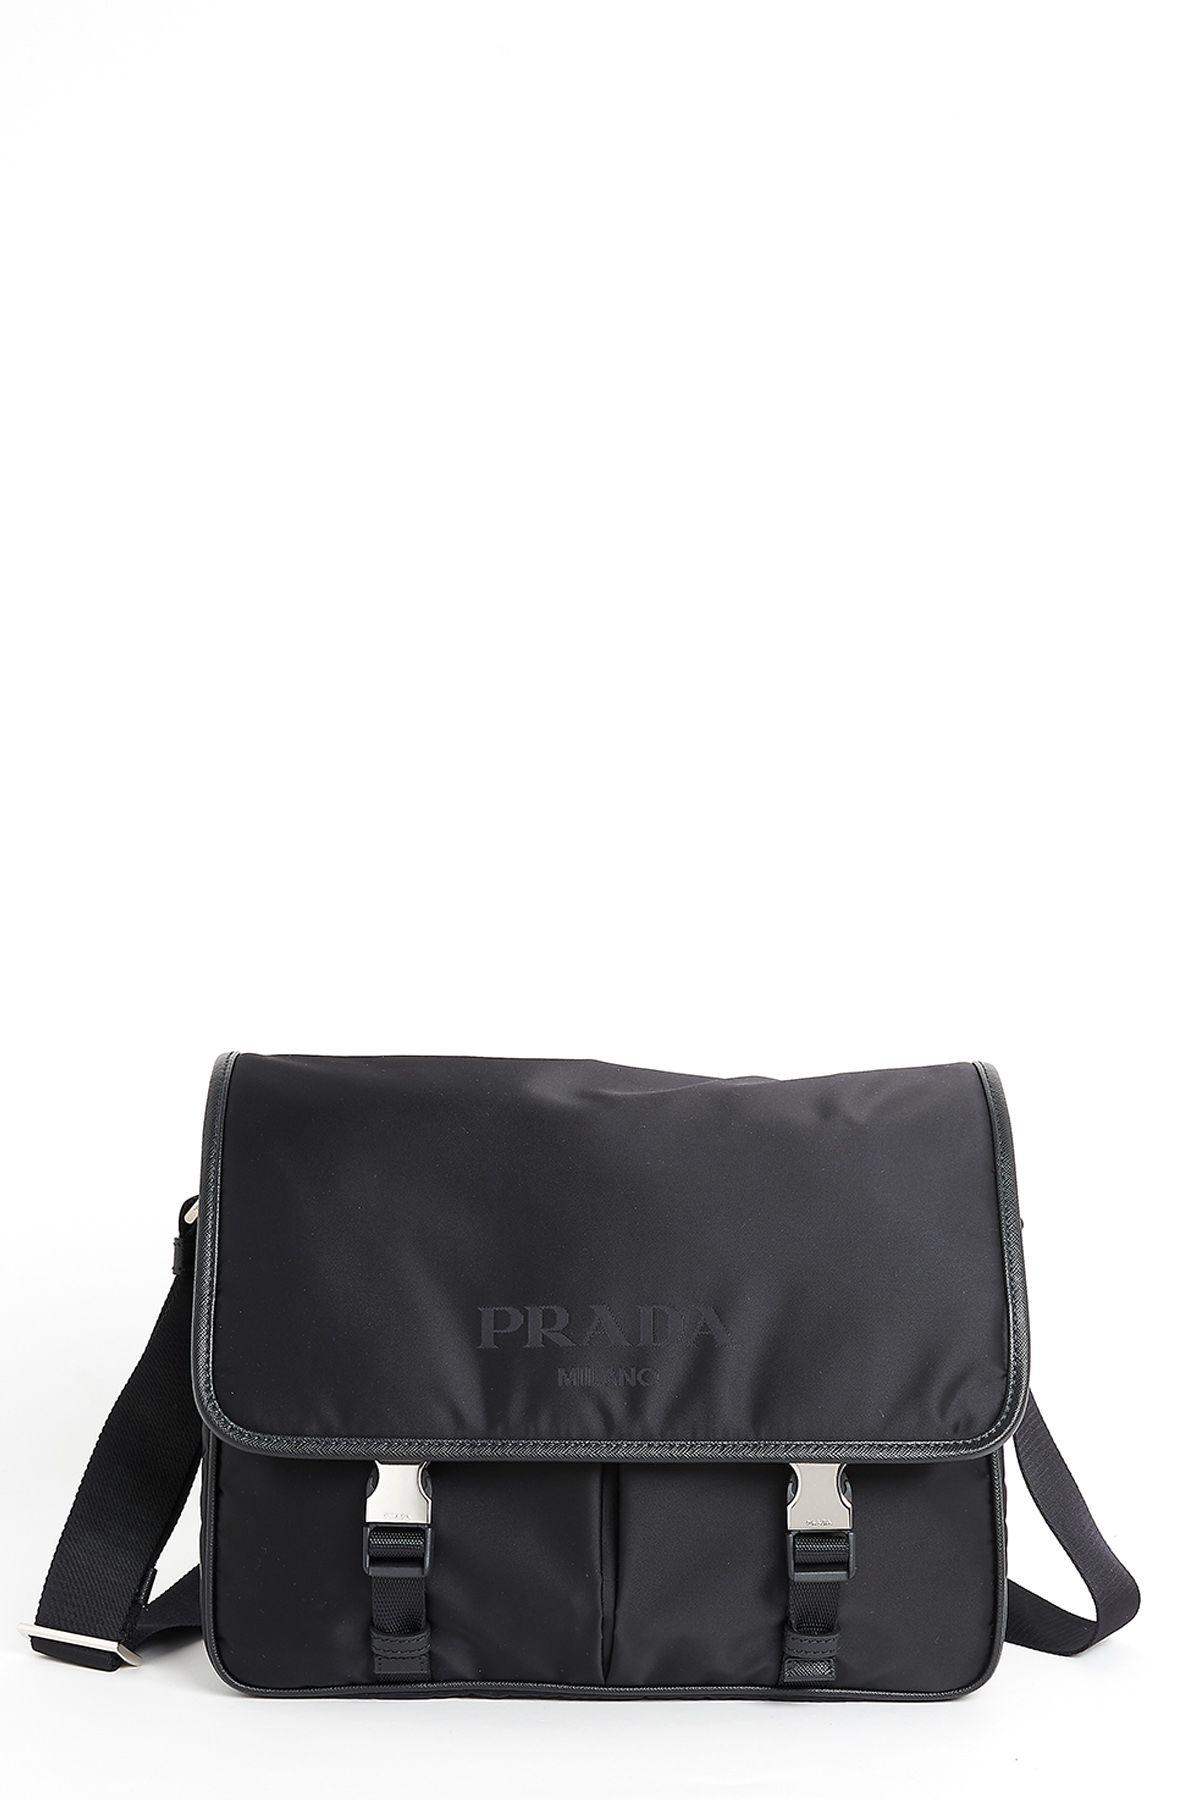 836f26f8f49352 Prada Men's Nylon Cross-Body Messenger Shoulder Bag In Black | ModeSens